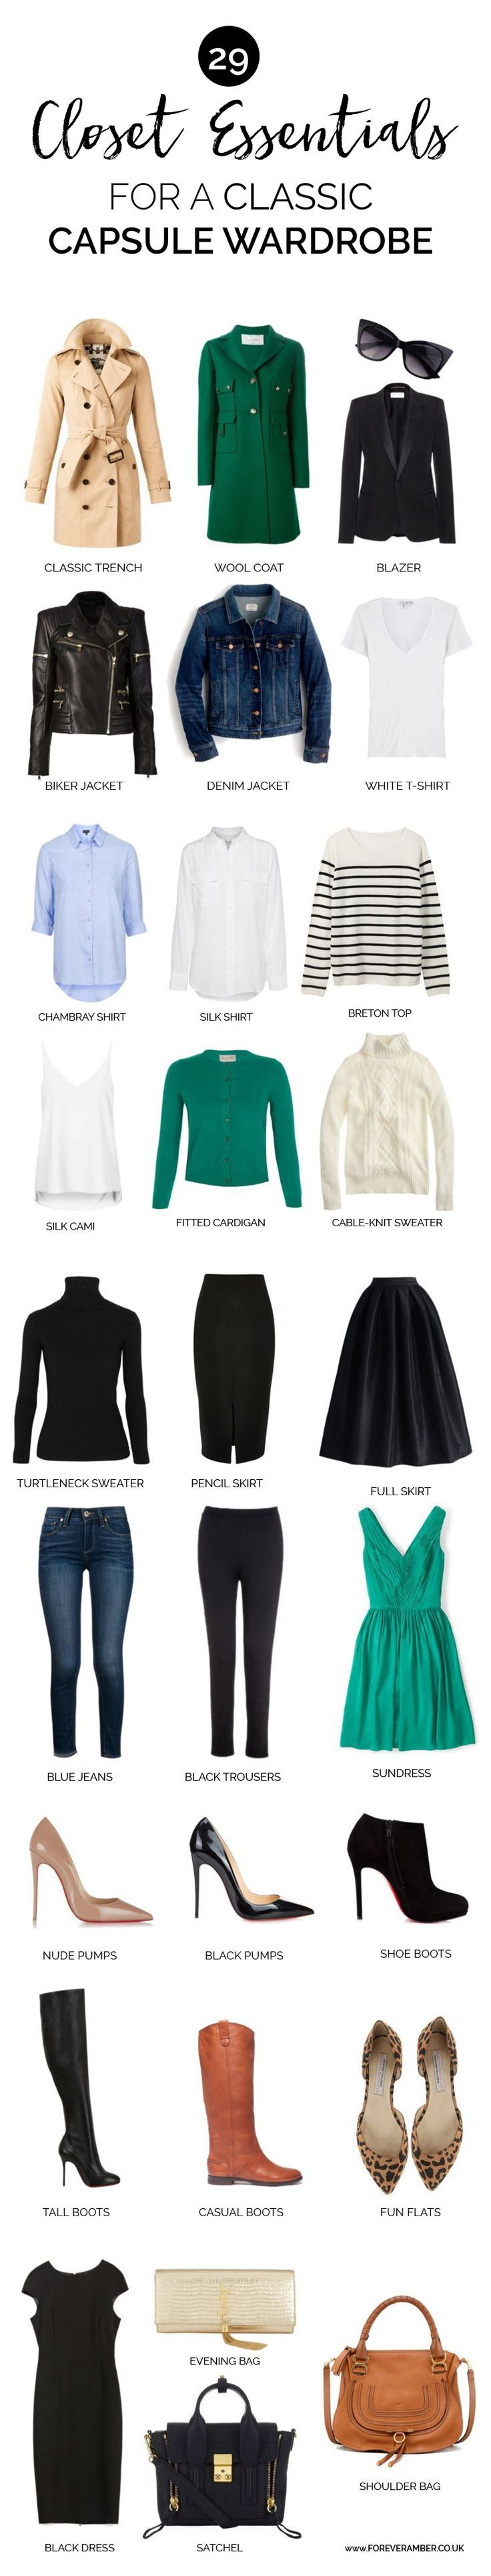 wardrobe essentials for a classic capsule wardrobe: